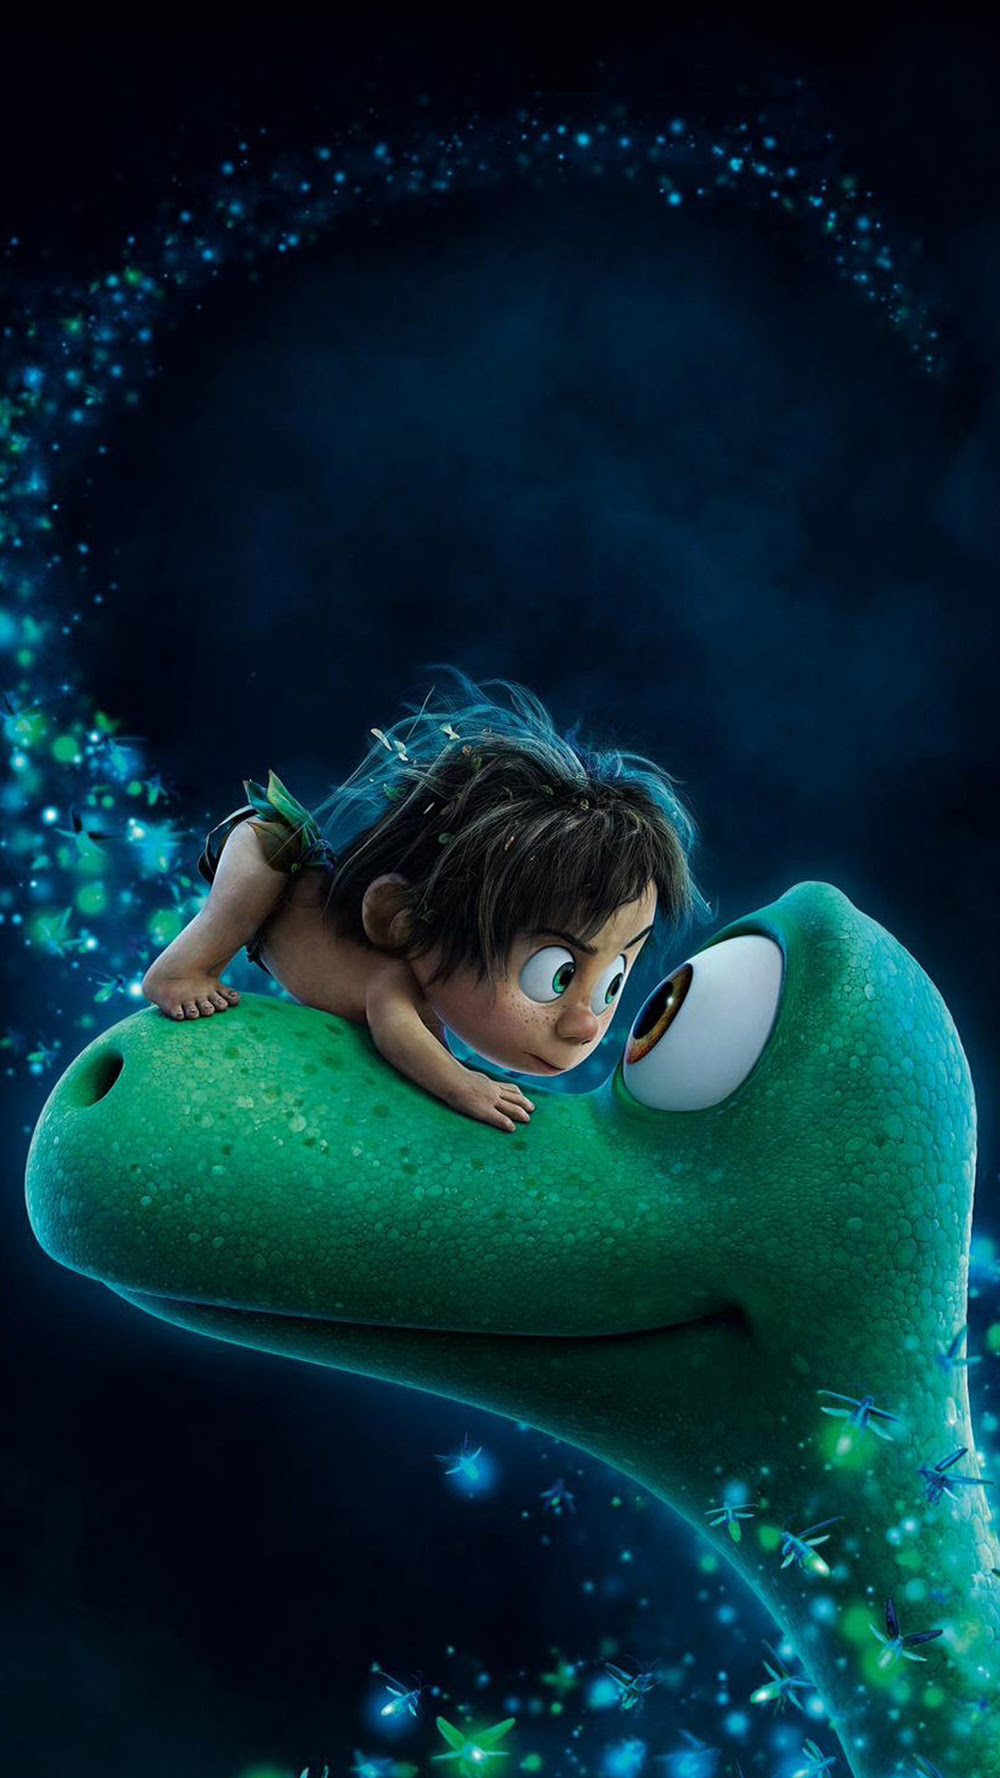 The Good Dinosaur: Downloadable Wallpaper for iOS \u0026 Android Phones \u2014 For The Love of Pixar